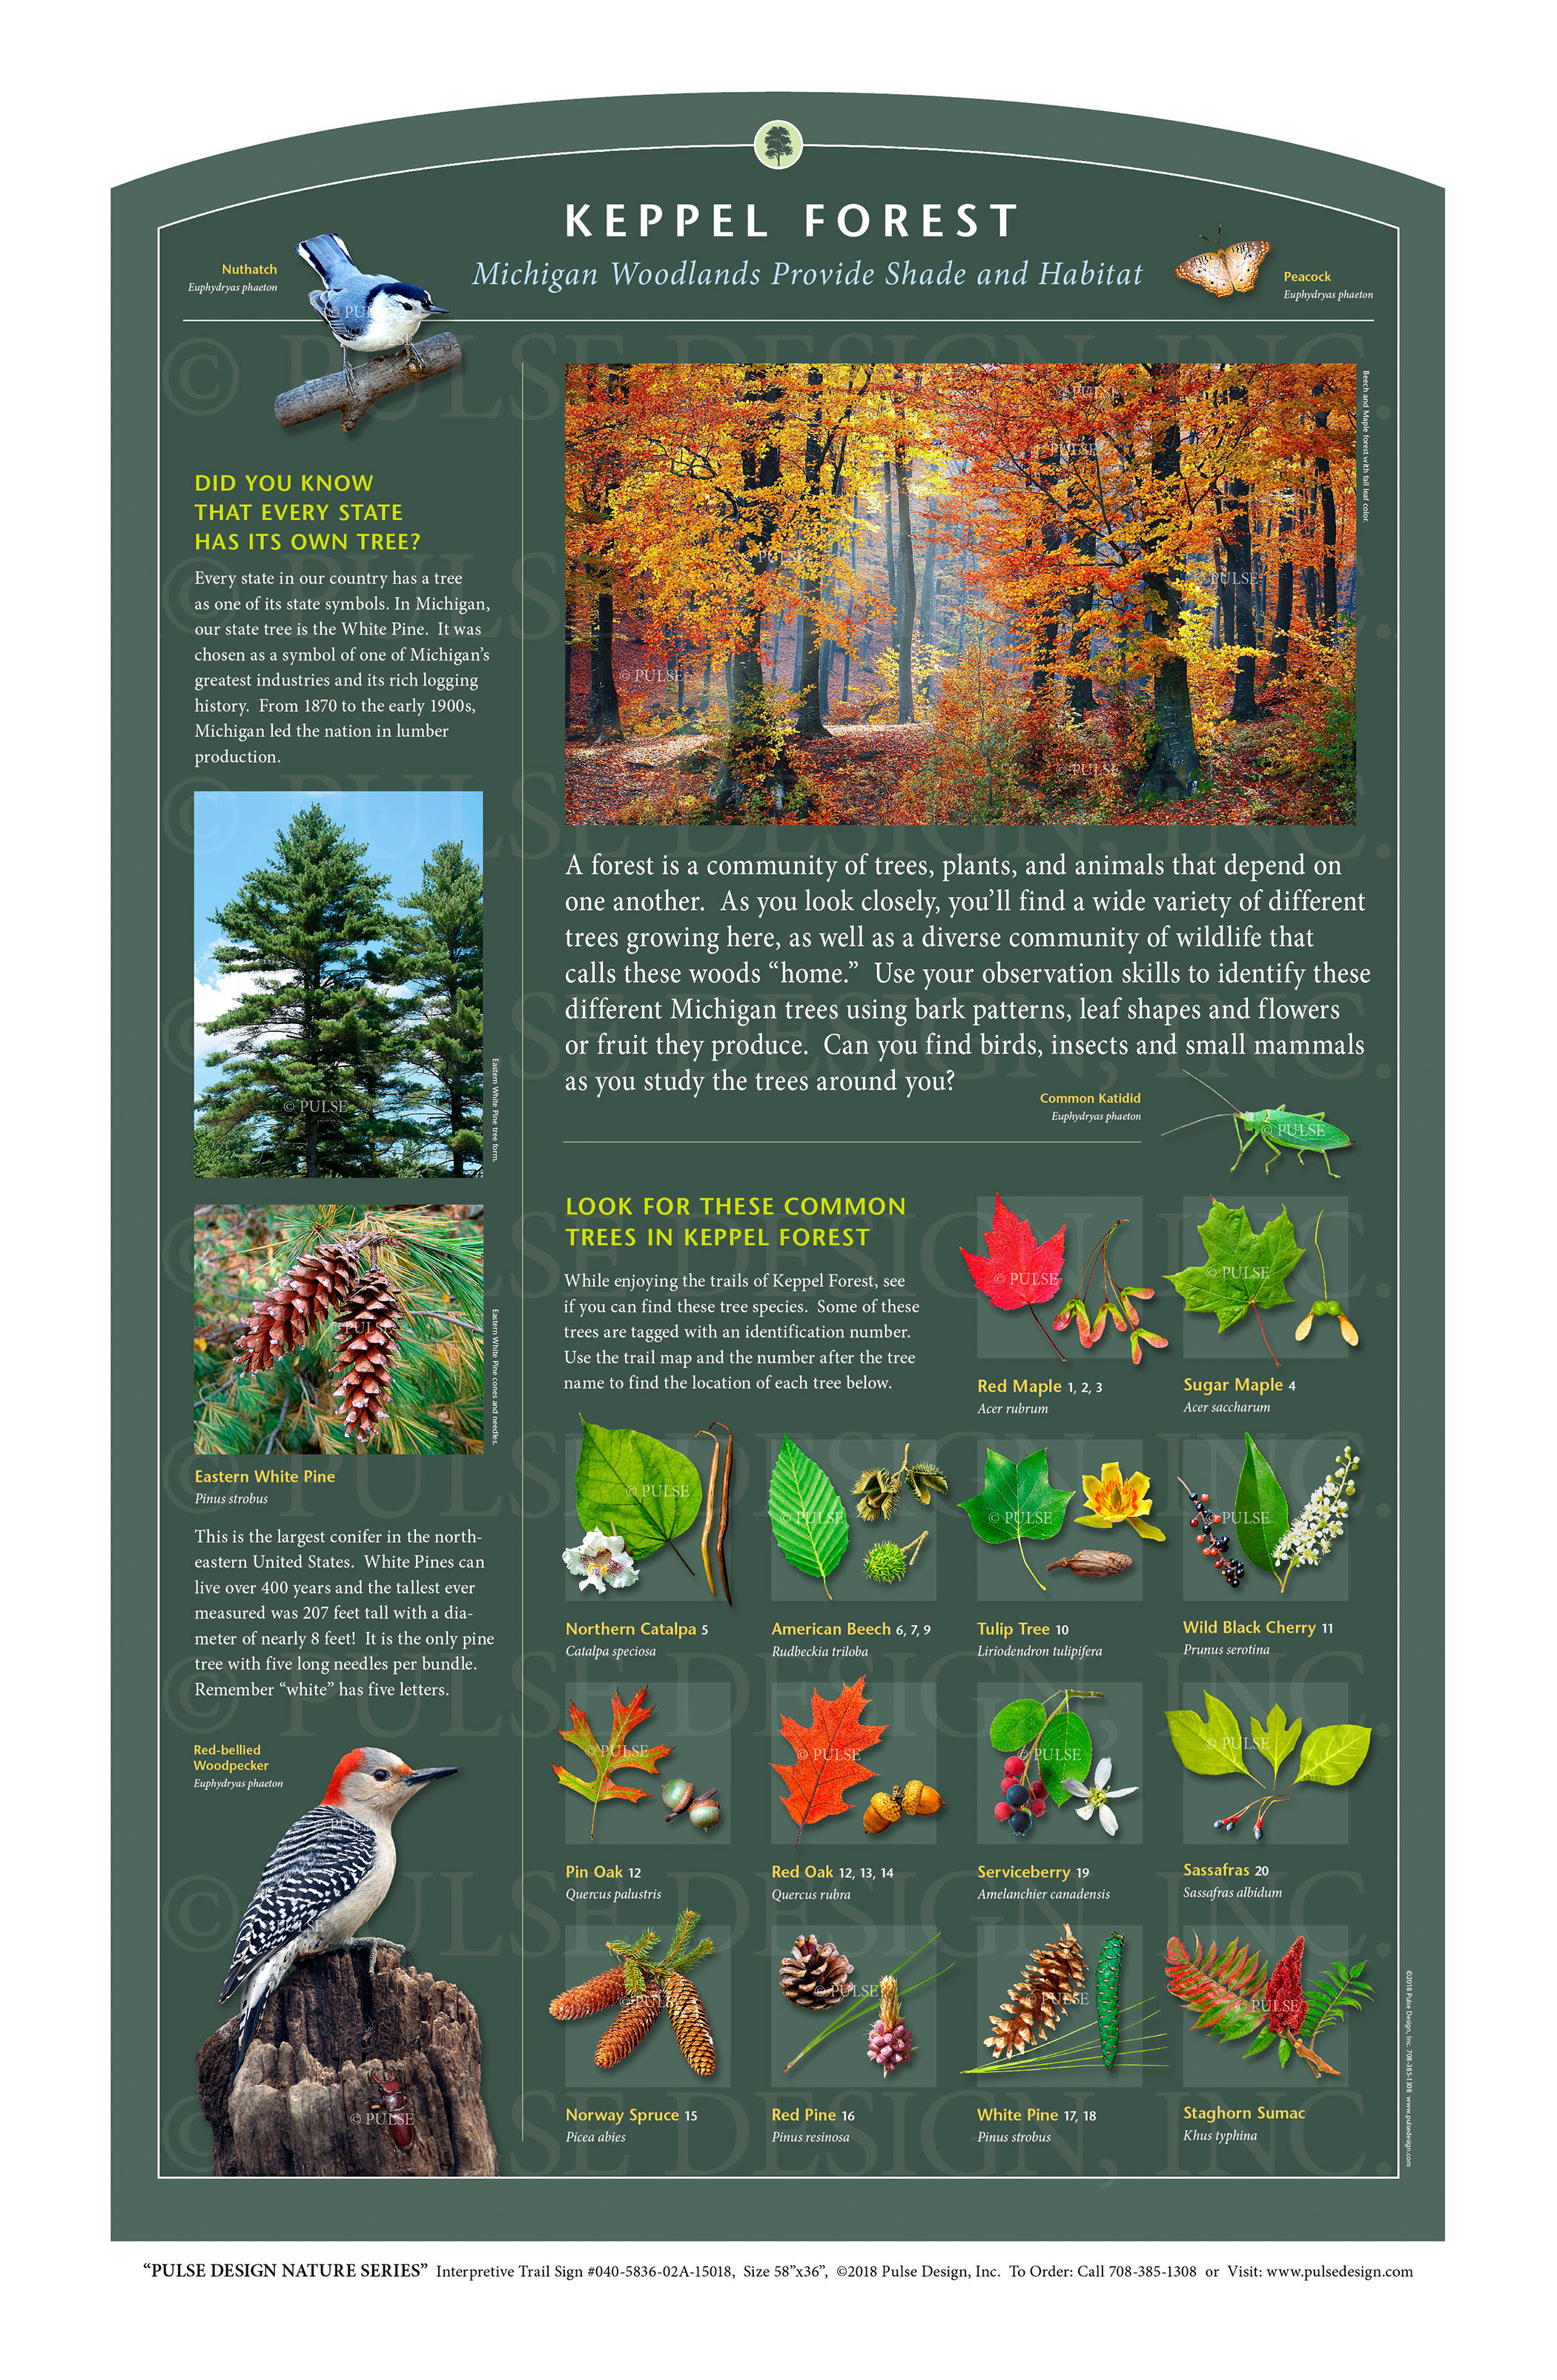 """Pulse Design provides Outdoor Interpretive Nature Trail Signs, Environmental Education Exhibits, Graphic Display Panels,Wayfinding Signage and Monuments, focused on Wildlife and Habitat throughout the United States. The  PULSE DESIGN NATURE SERIES is a beautiful, """"Ready-to-Order"""" and """"Customizable"""" series of interpretive trail signs that cover many common nature subjects. See more signs from our  FOREST & WOODLAND HABITAT SERIES ."""